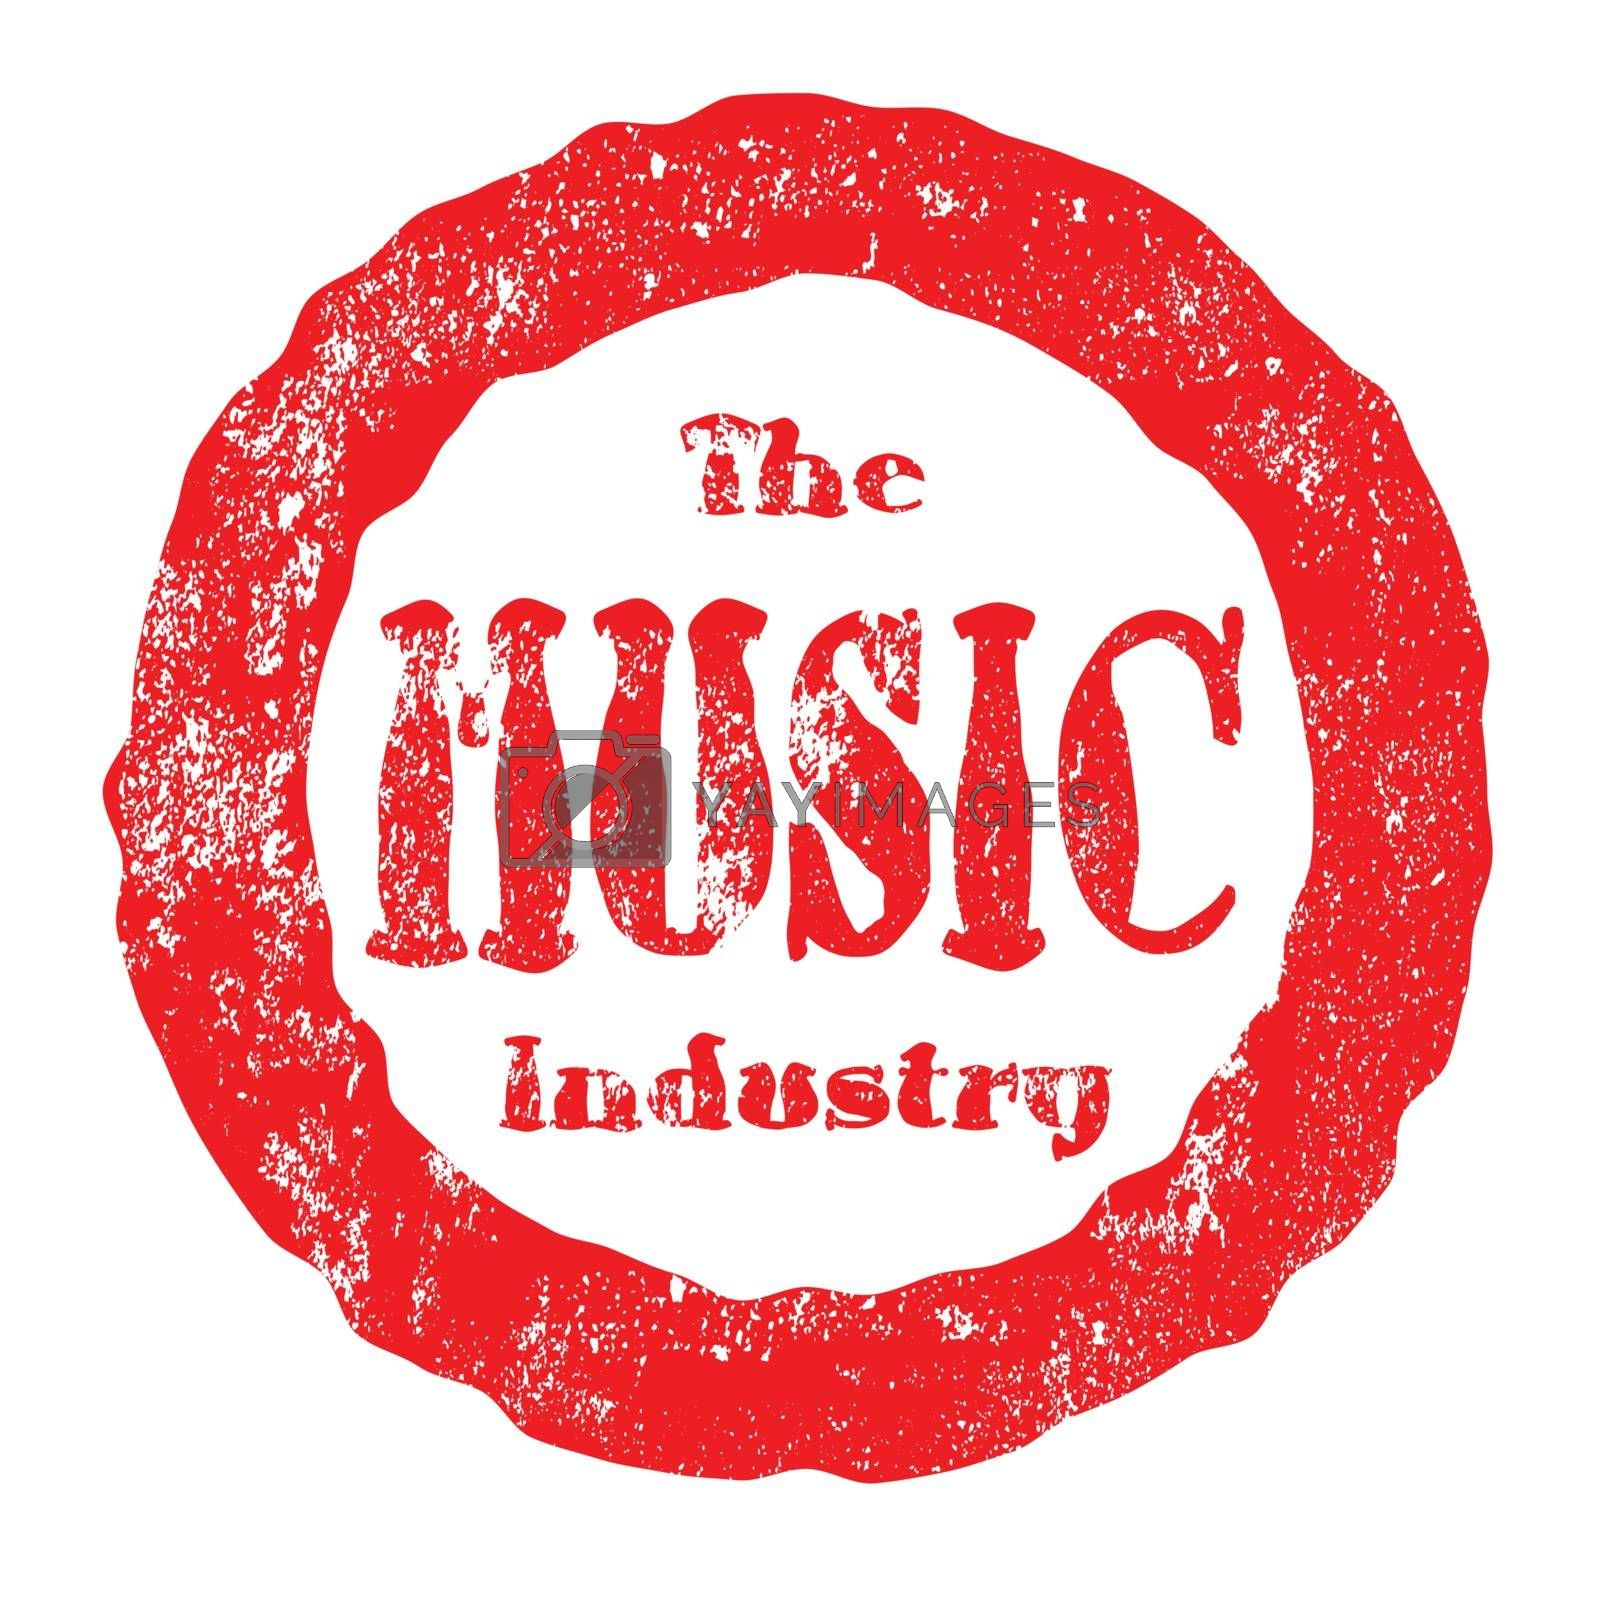 The Music Industry Red Ink Rubber Stamp by HomeSteadDigital